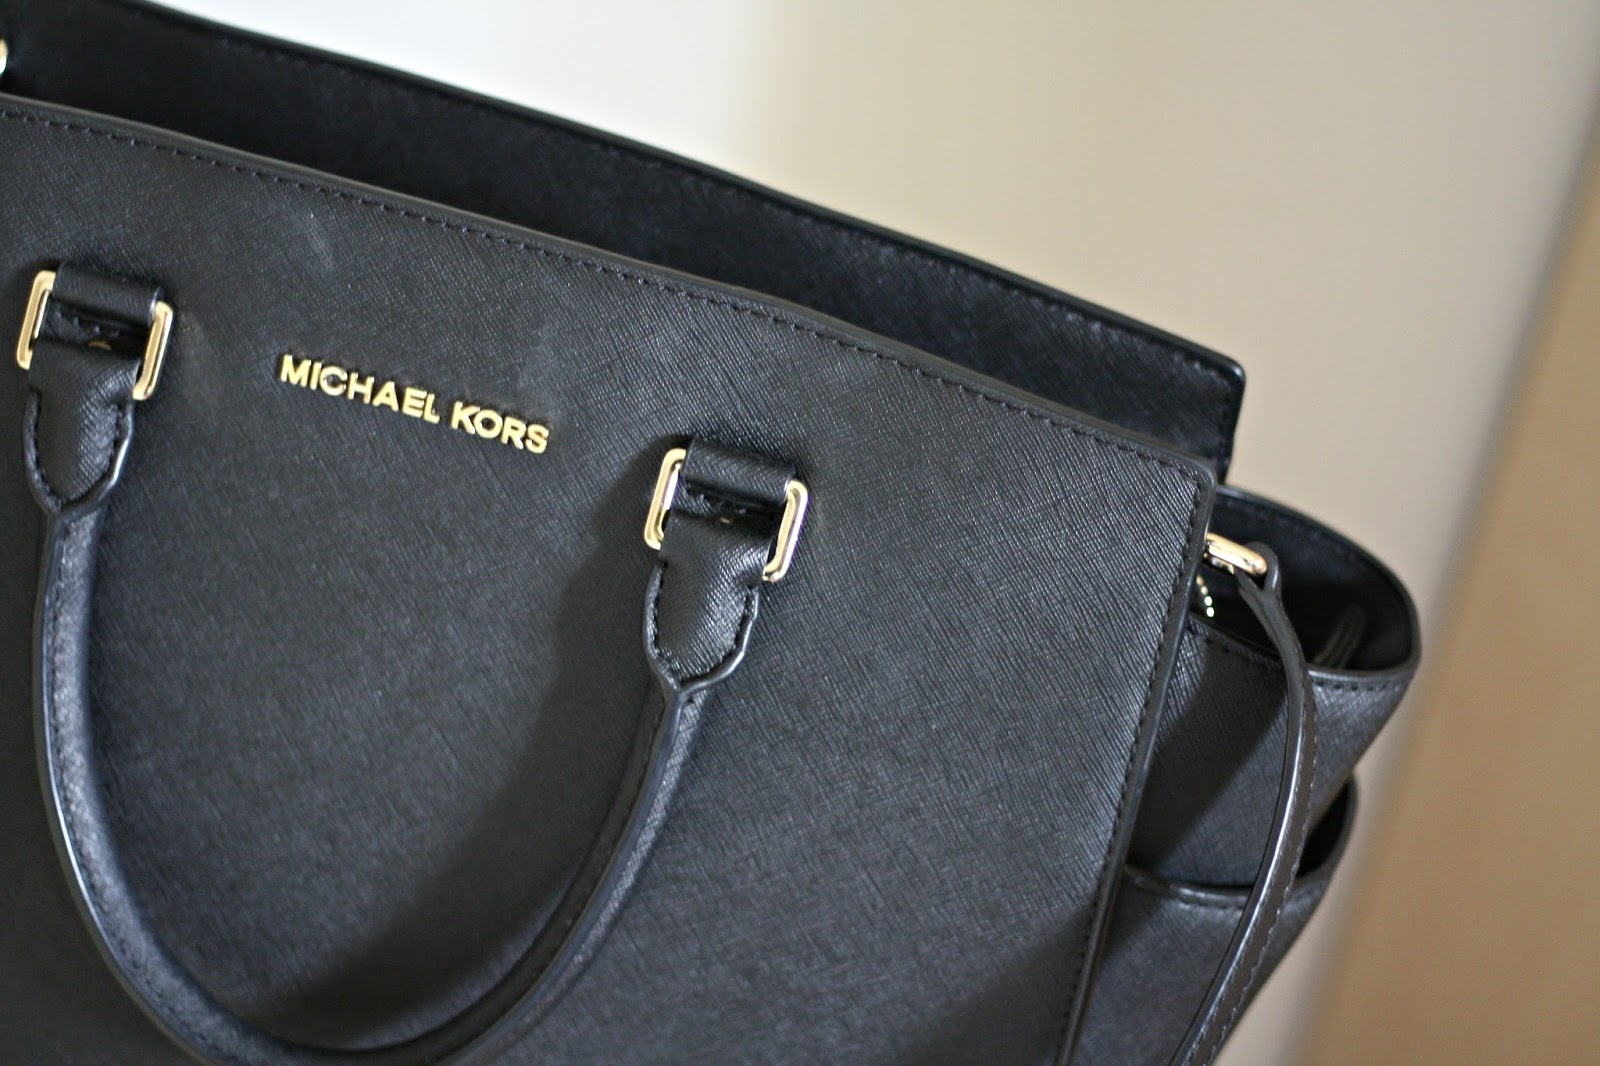 Michael Kors Black Selma Tote Handbag Blog